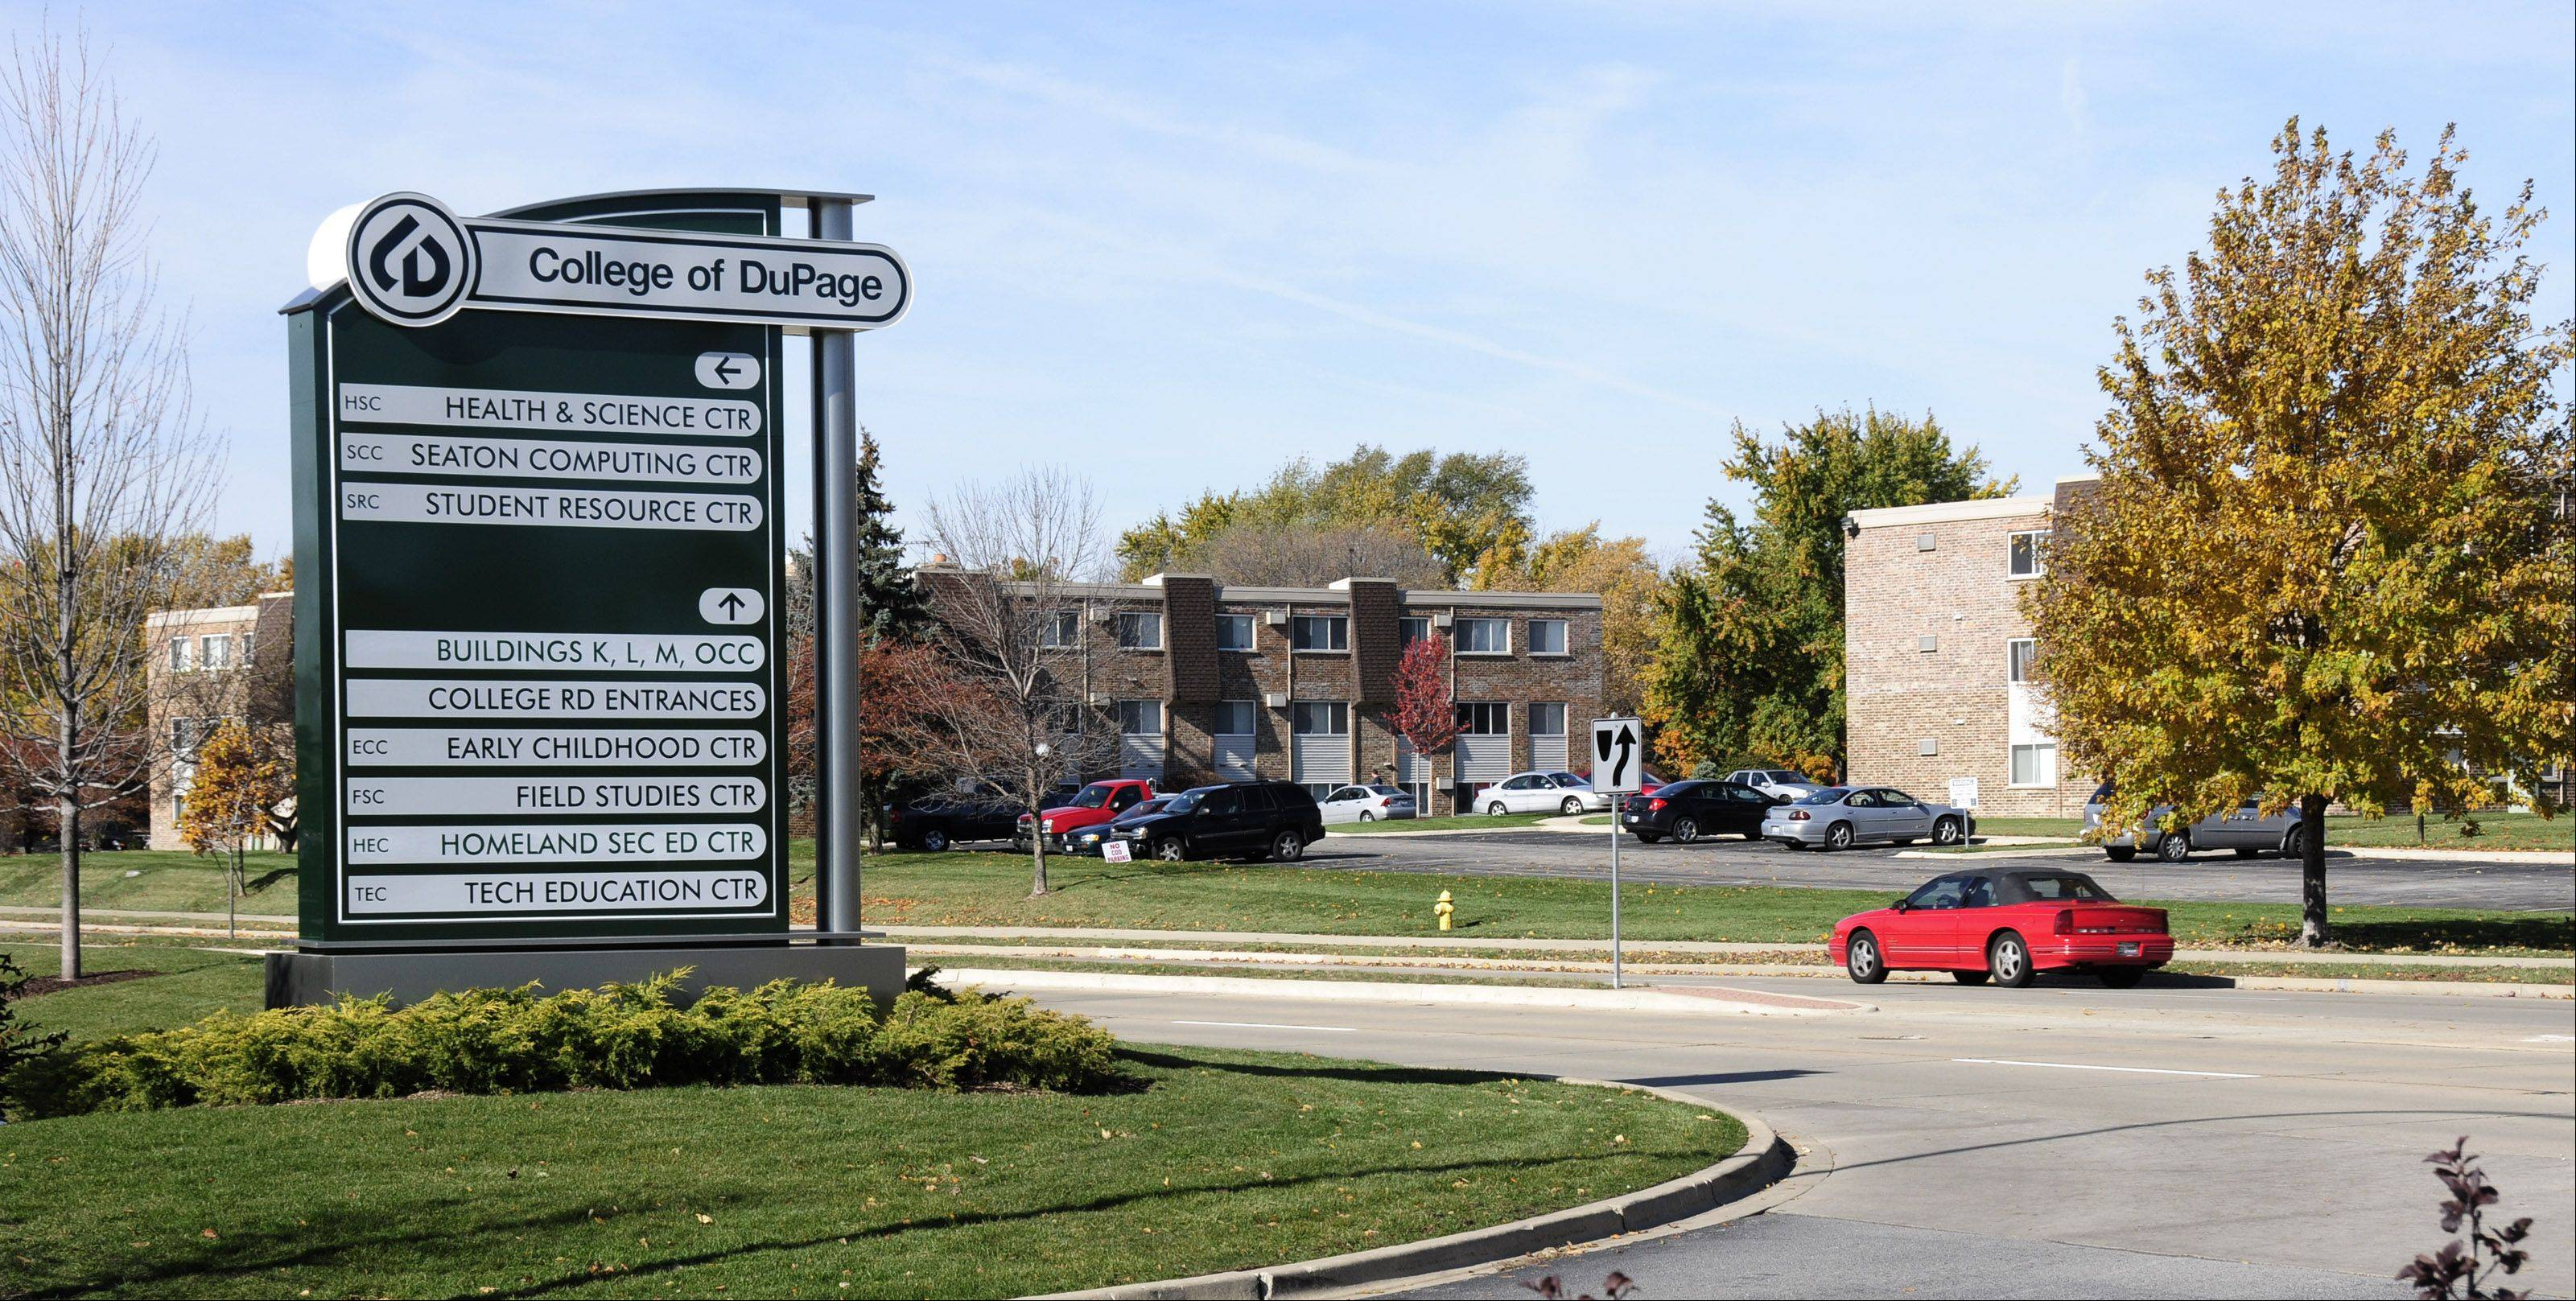 Following a closed-door meeting with a judge Wednesday, attorneys for the village of Glen Ellyn and College of DuPage said village officials will still be able to testify at county hearings regarding campus expansion plans, but they won't be allowed to discuss past village ordinance violations.